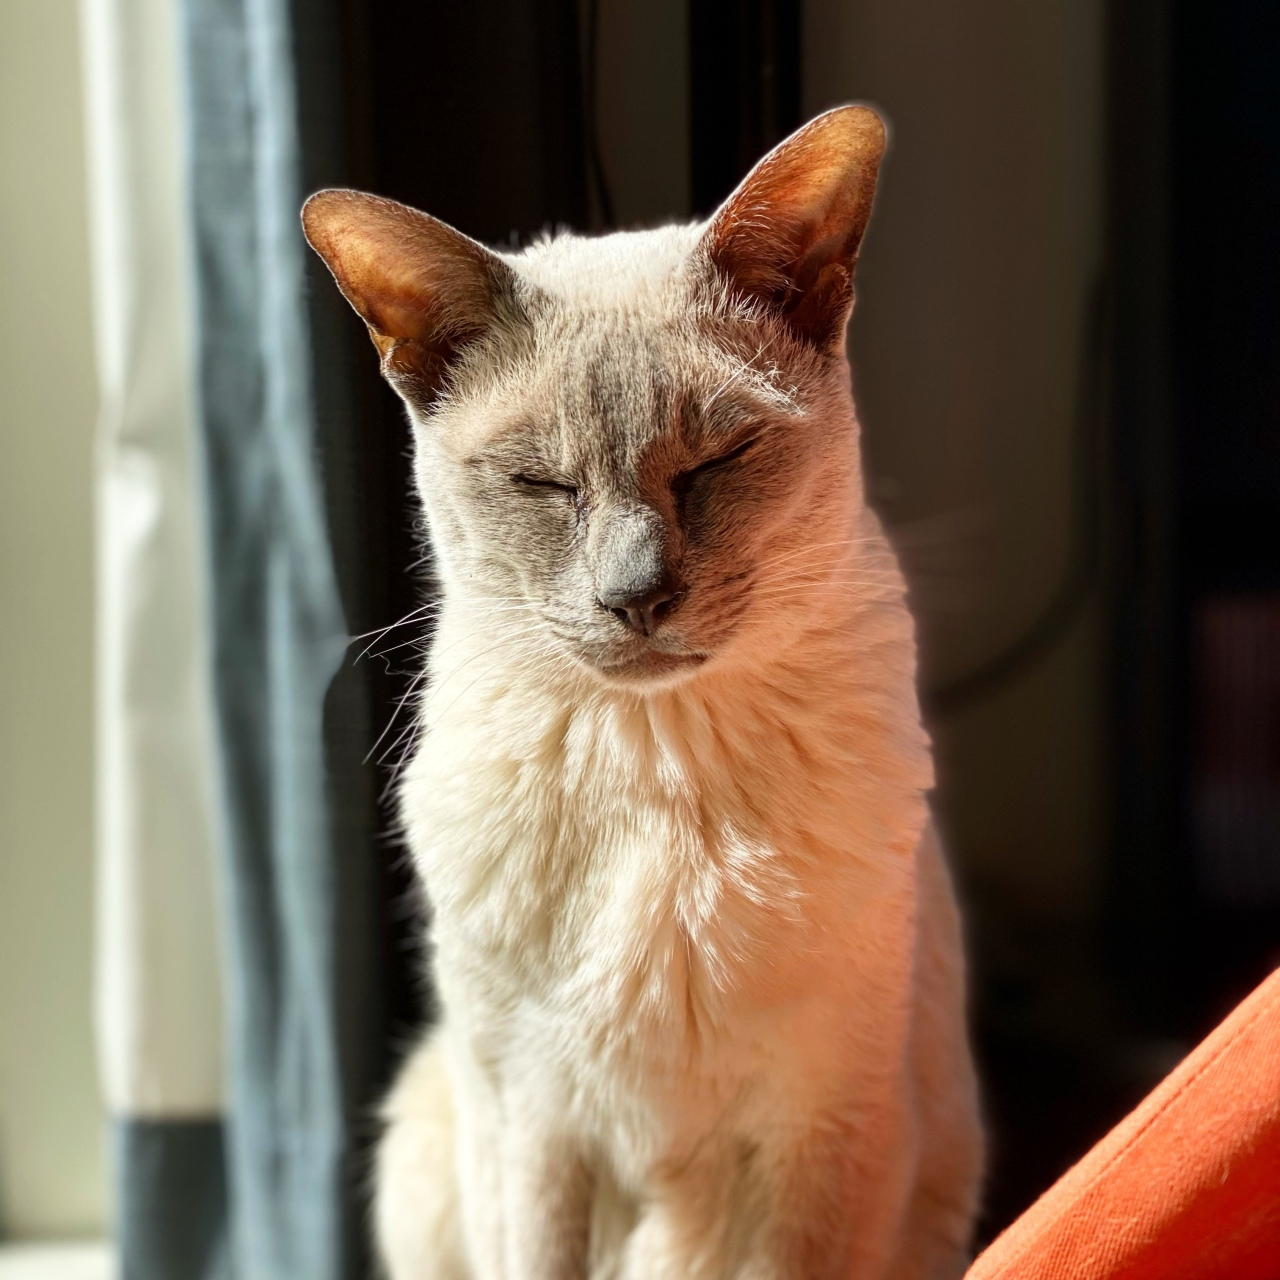 Lilac point Tonkinese cat named Sissy enjoys the summer sunshine with her eyes closed and a smile on her face